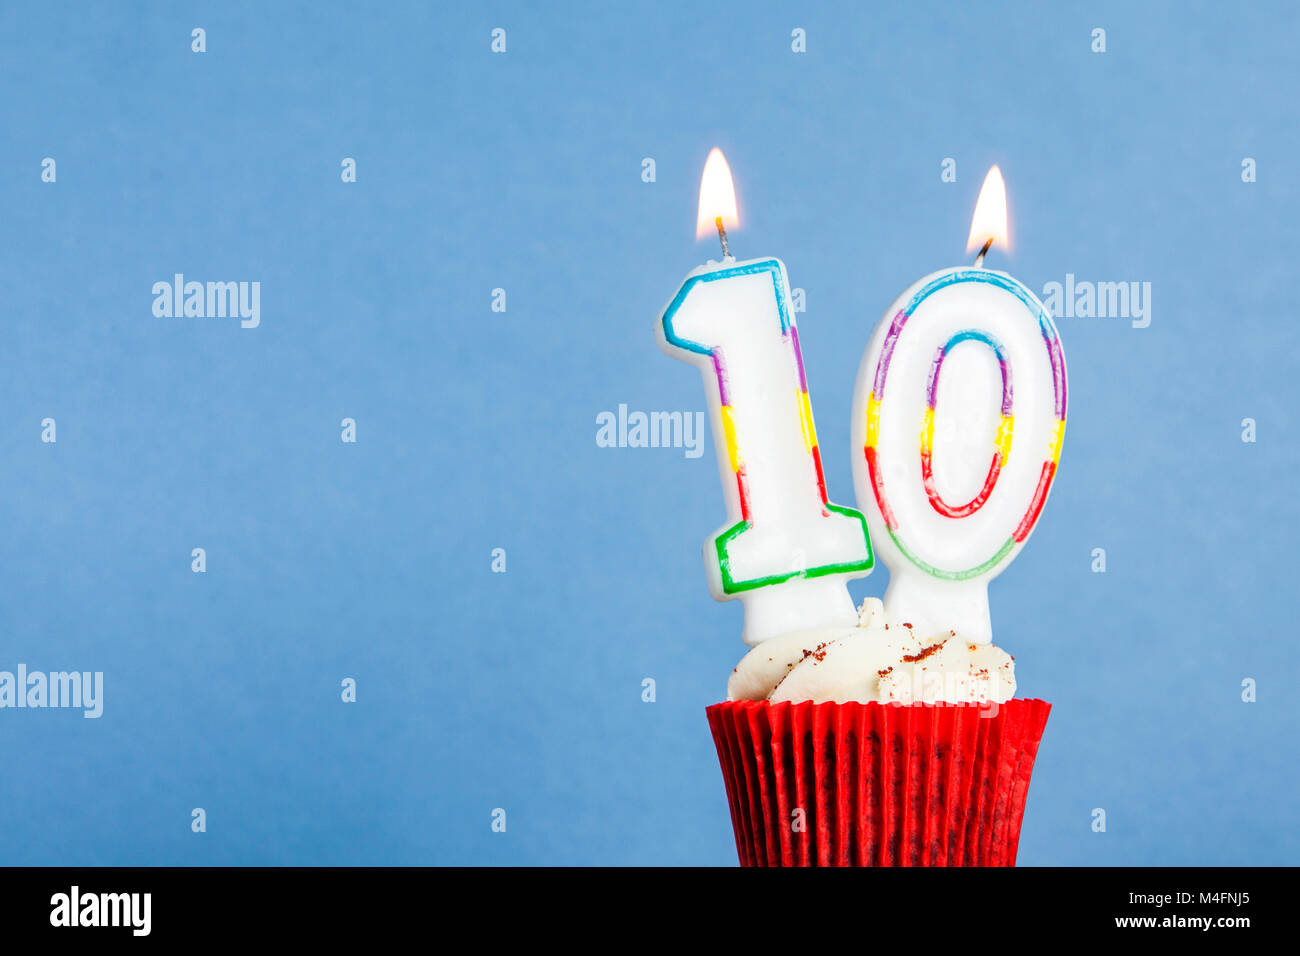 Number 10 birthday candle in a cupcake against a blue background - Stock Image